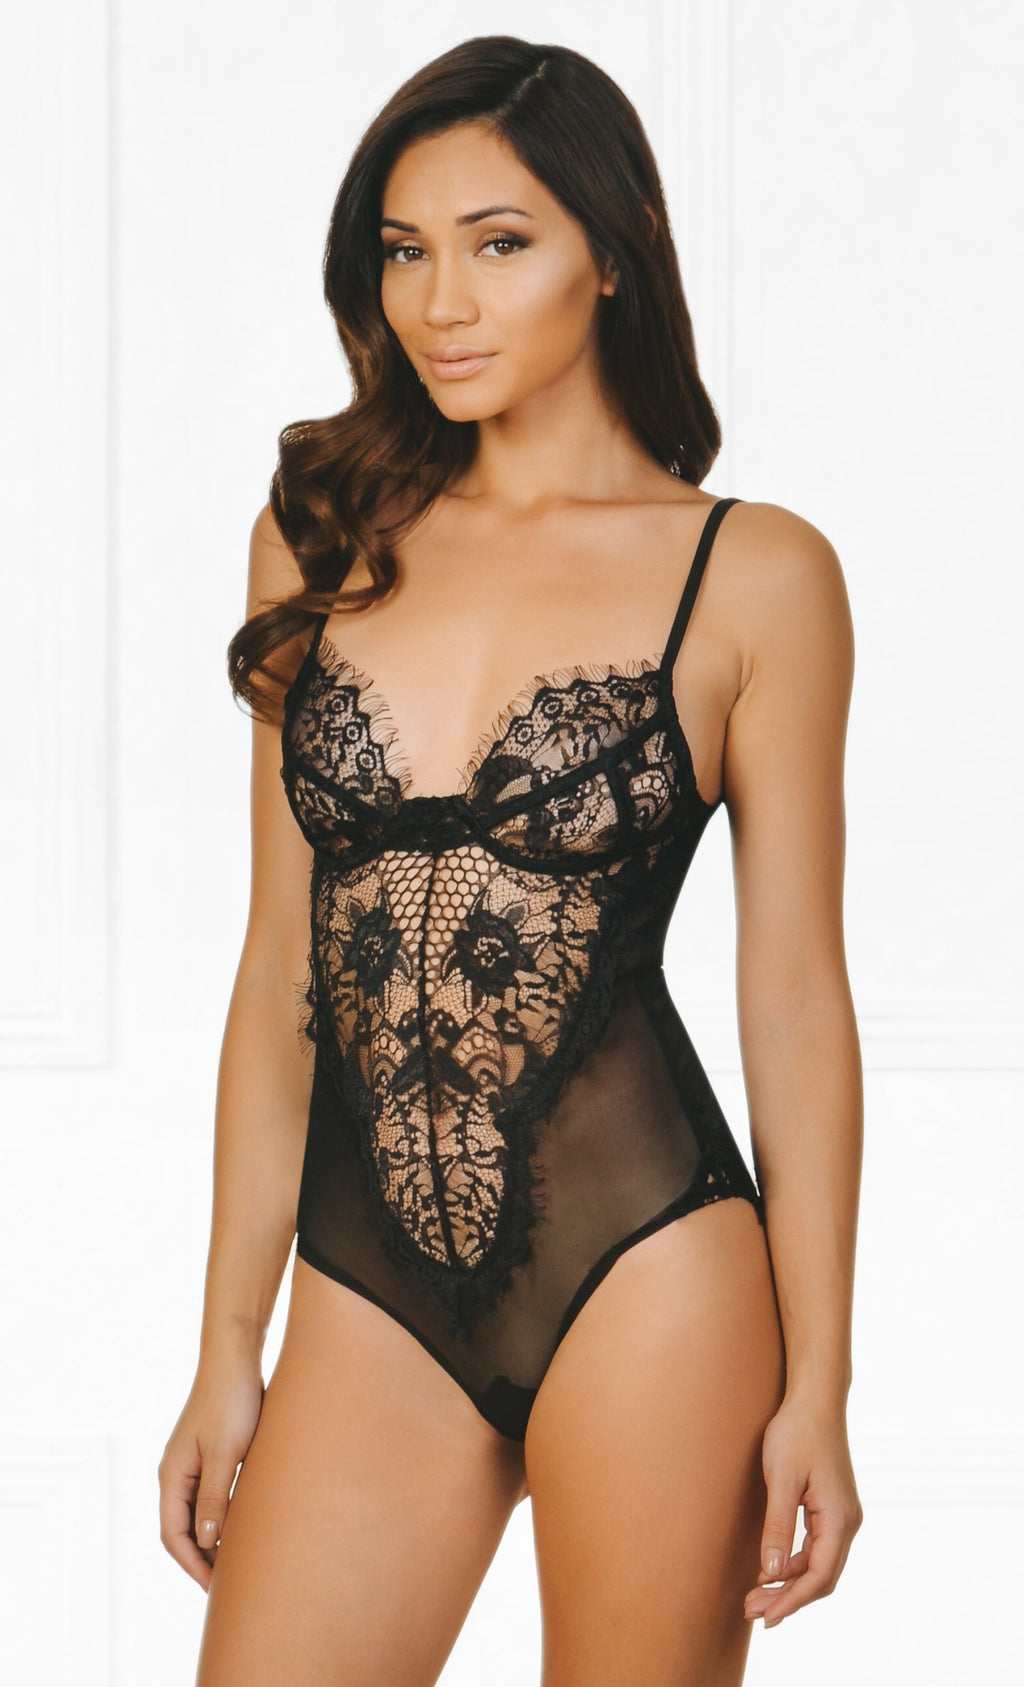 Indie XO Early To Bed Sheer Mesh Lace Sleeveless Spaghetti Strap V Neck Lingerie Bodysuit - Inspired by Khloe Kardashian